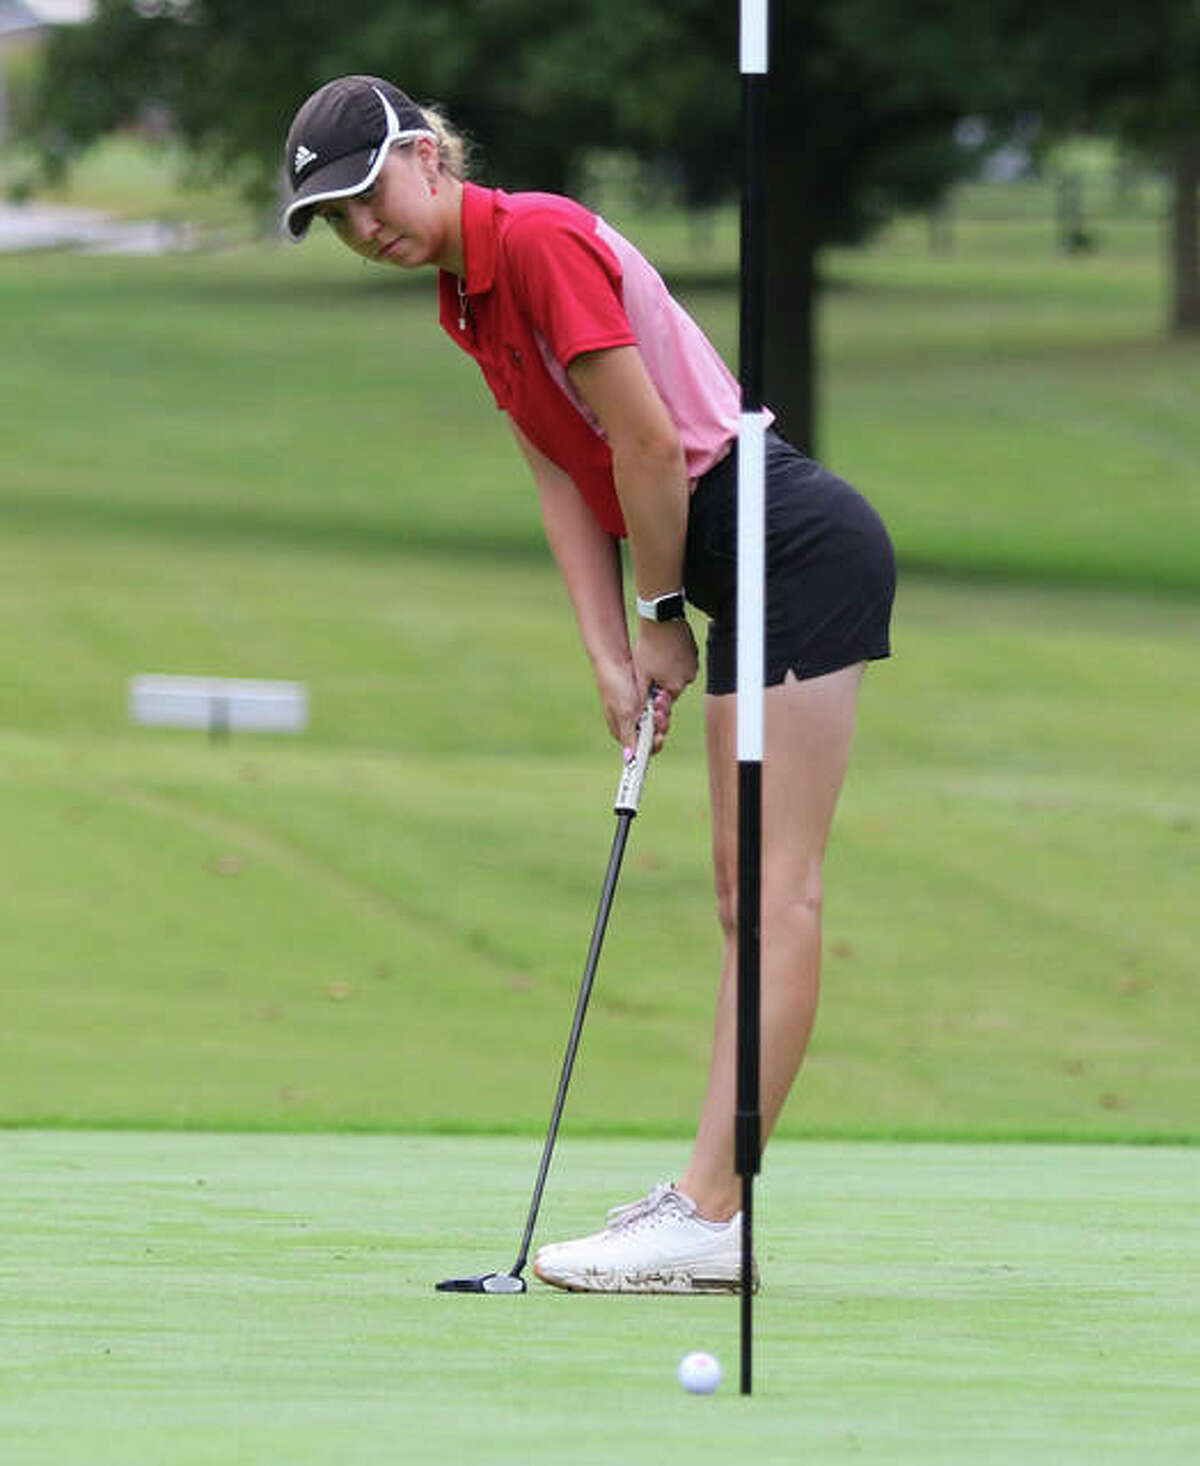 Alton's Natalie Messinger watches her putt roll into the cup to save par on the first hole Tuesday morning in the SWC Tourney at Belk Park Golf Course in Wood River. Messinger shot 72 to finish in a three-way tie for first.